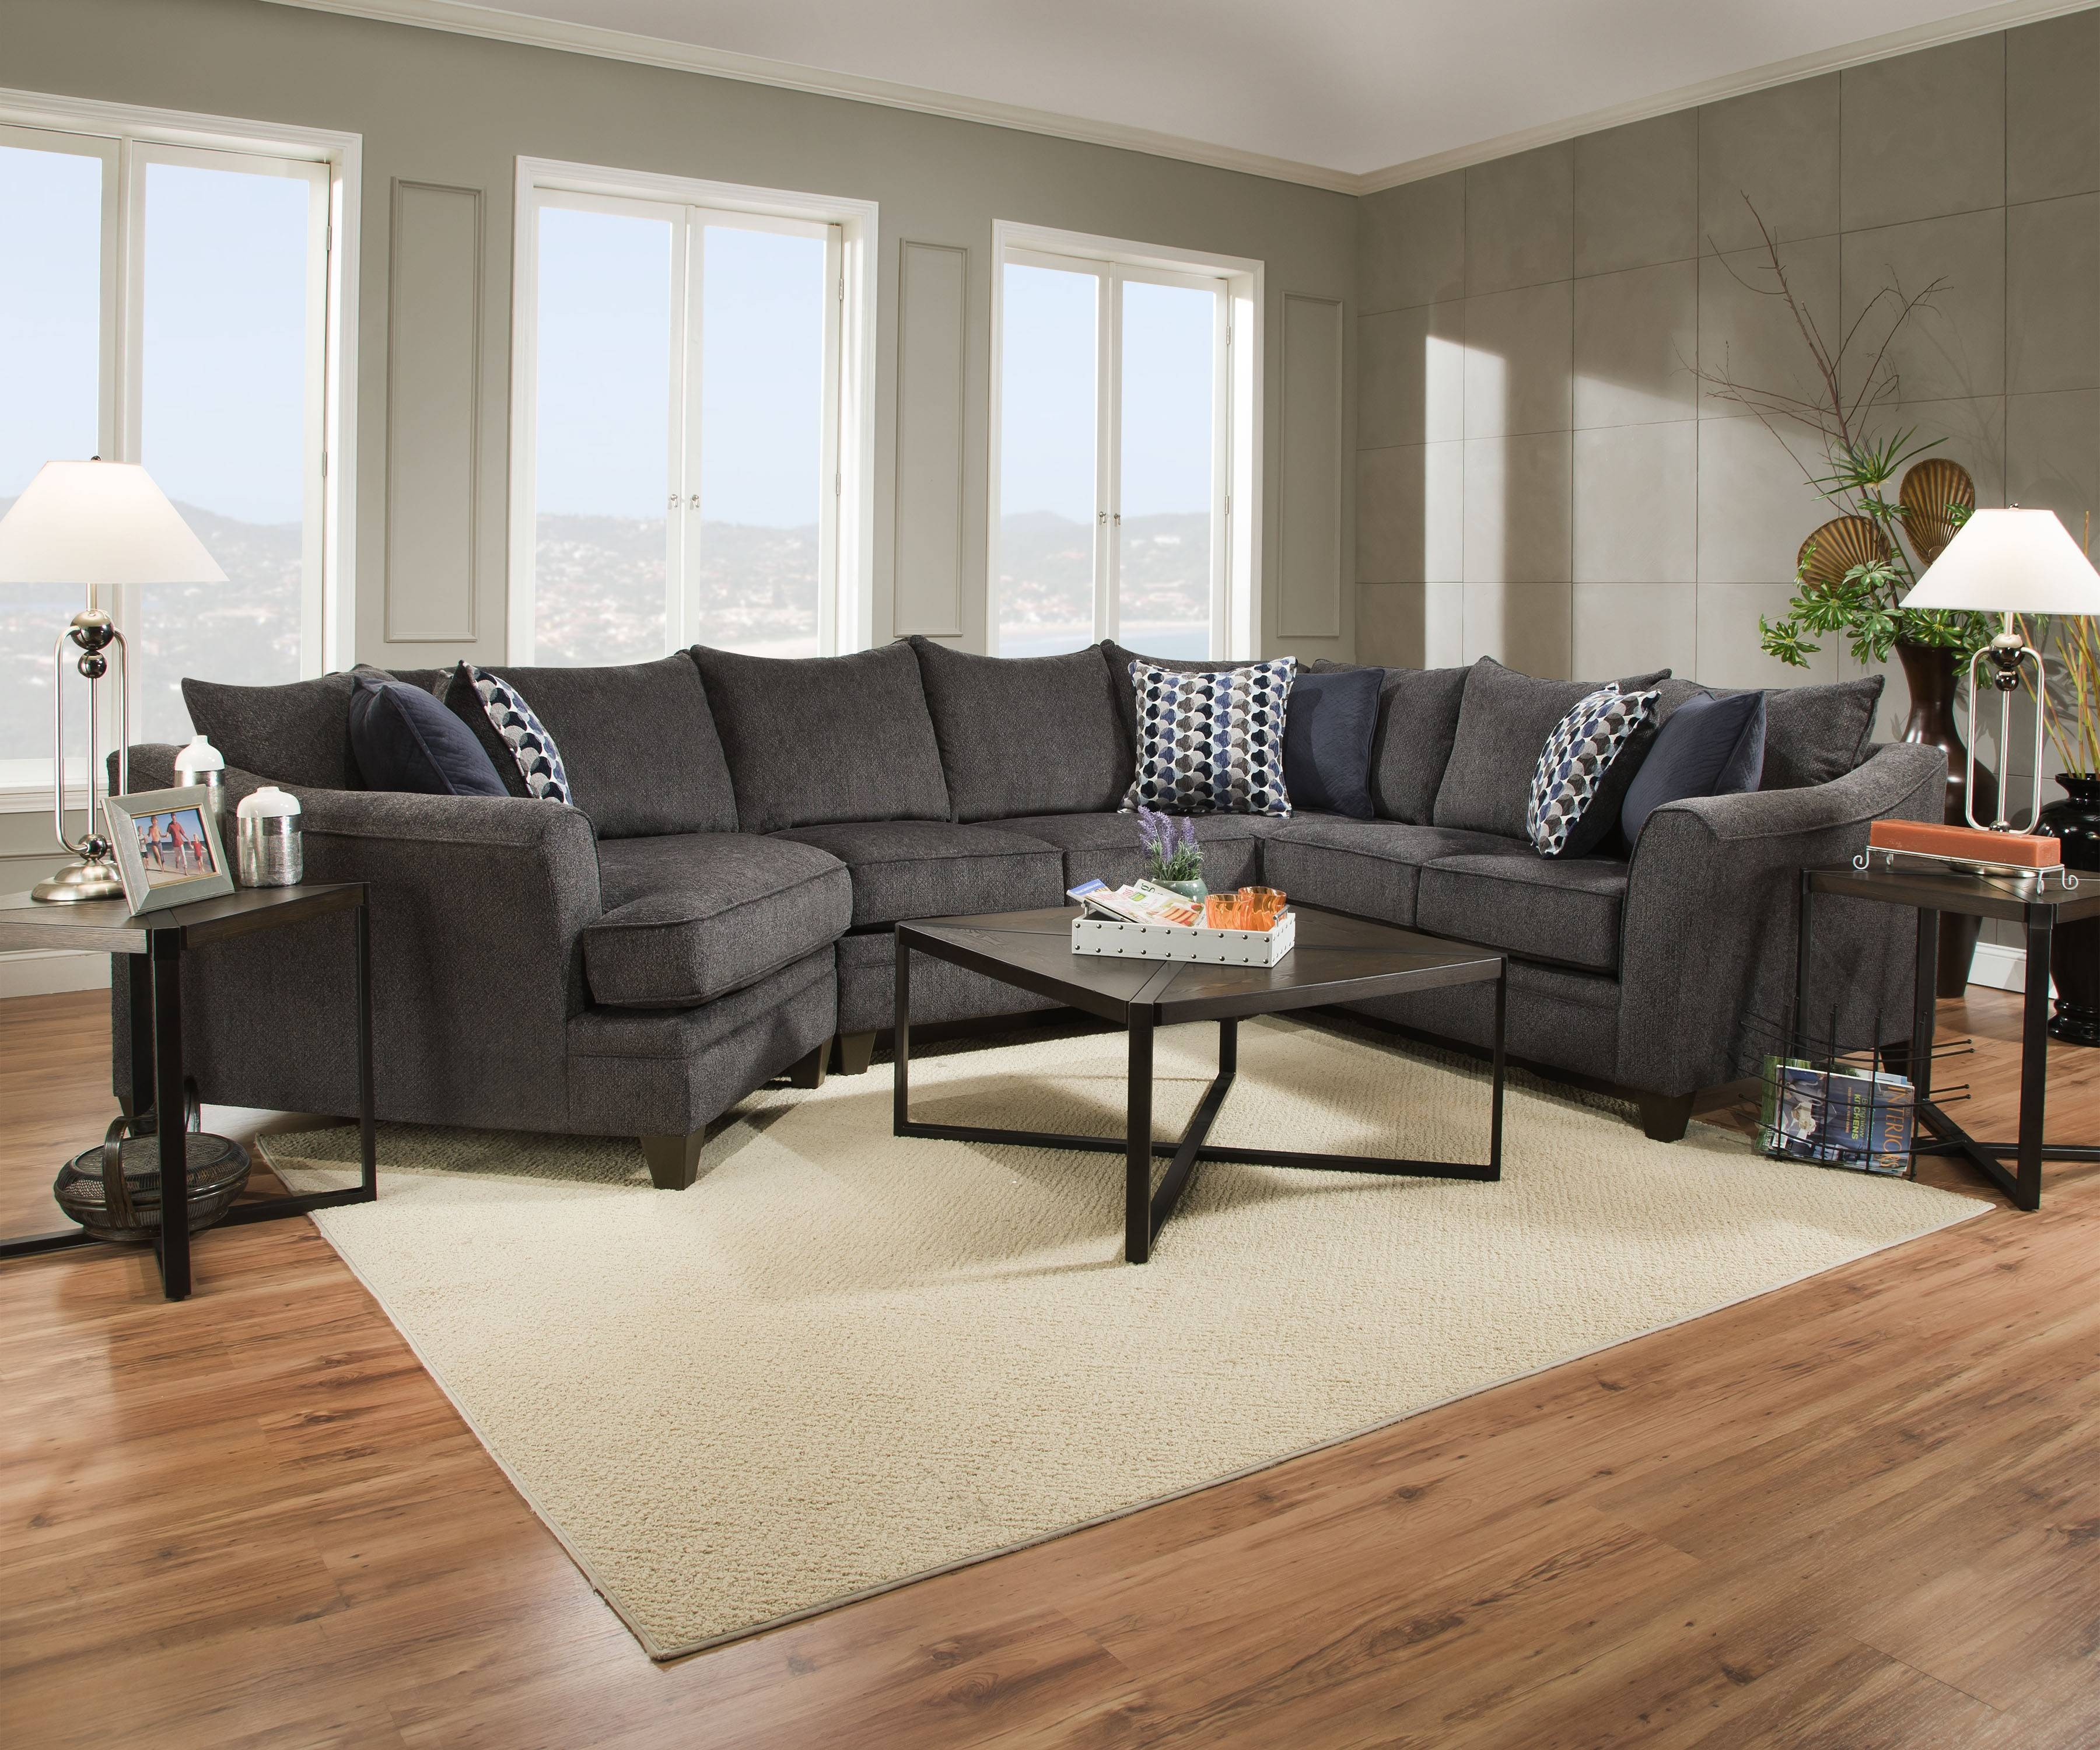 New Albany Sectional Sofa 84 For Corinthian Sectional Sofa With with Corinthian Sectional Sofas (Image 21 of 30)